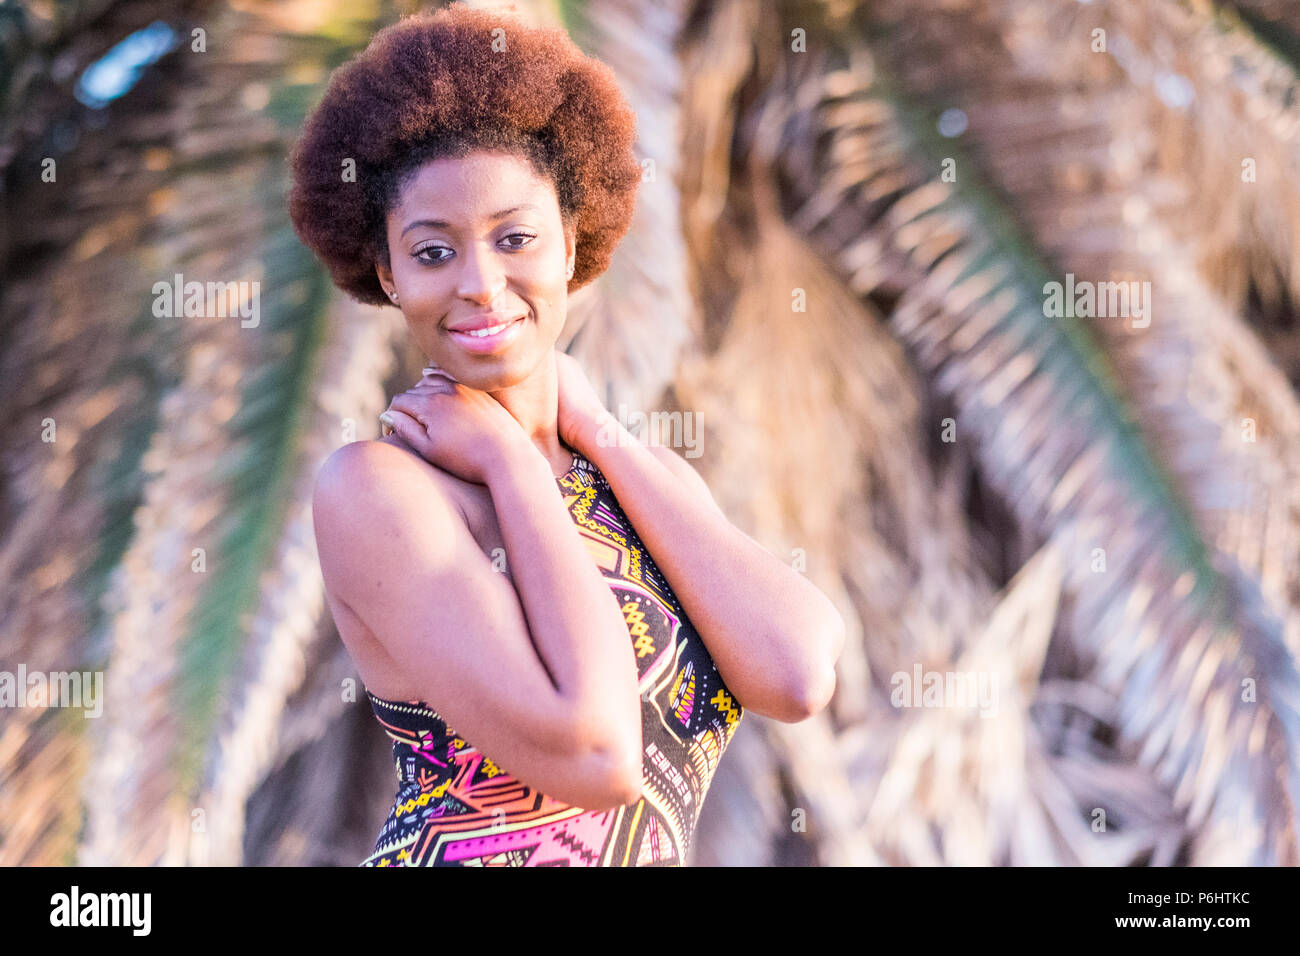 cute cheerful african afro model girl pose in a tropical place. summer time and leisure activity for beautiful young woman smiling under the sun with  - Stock Image